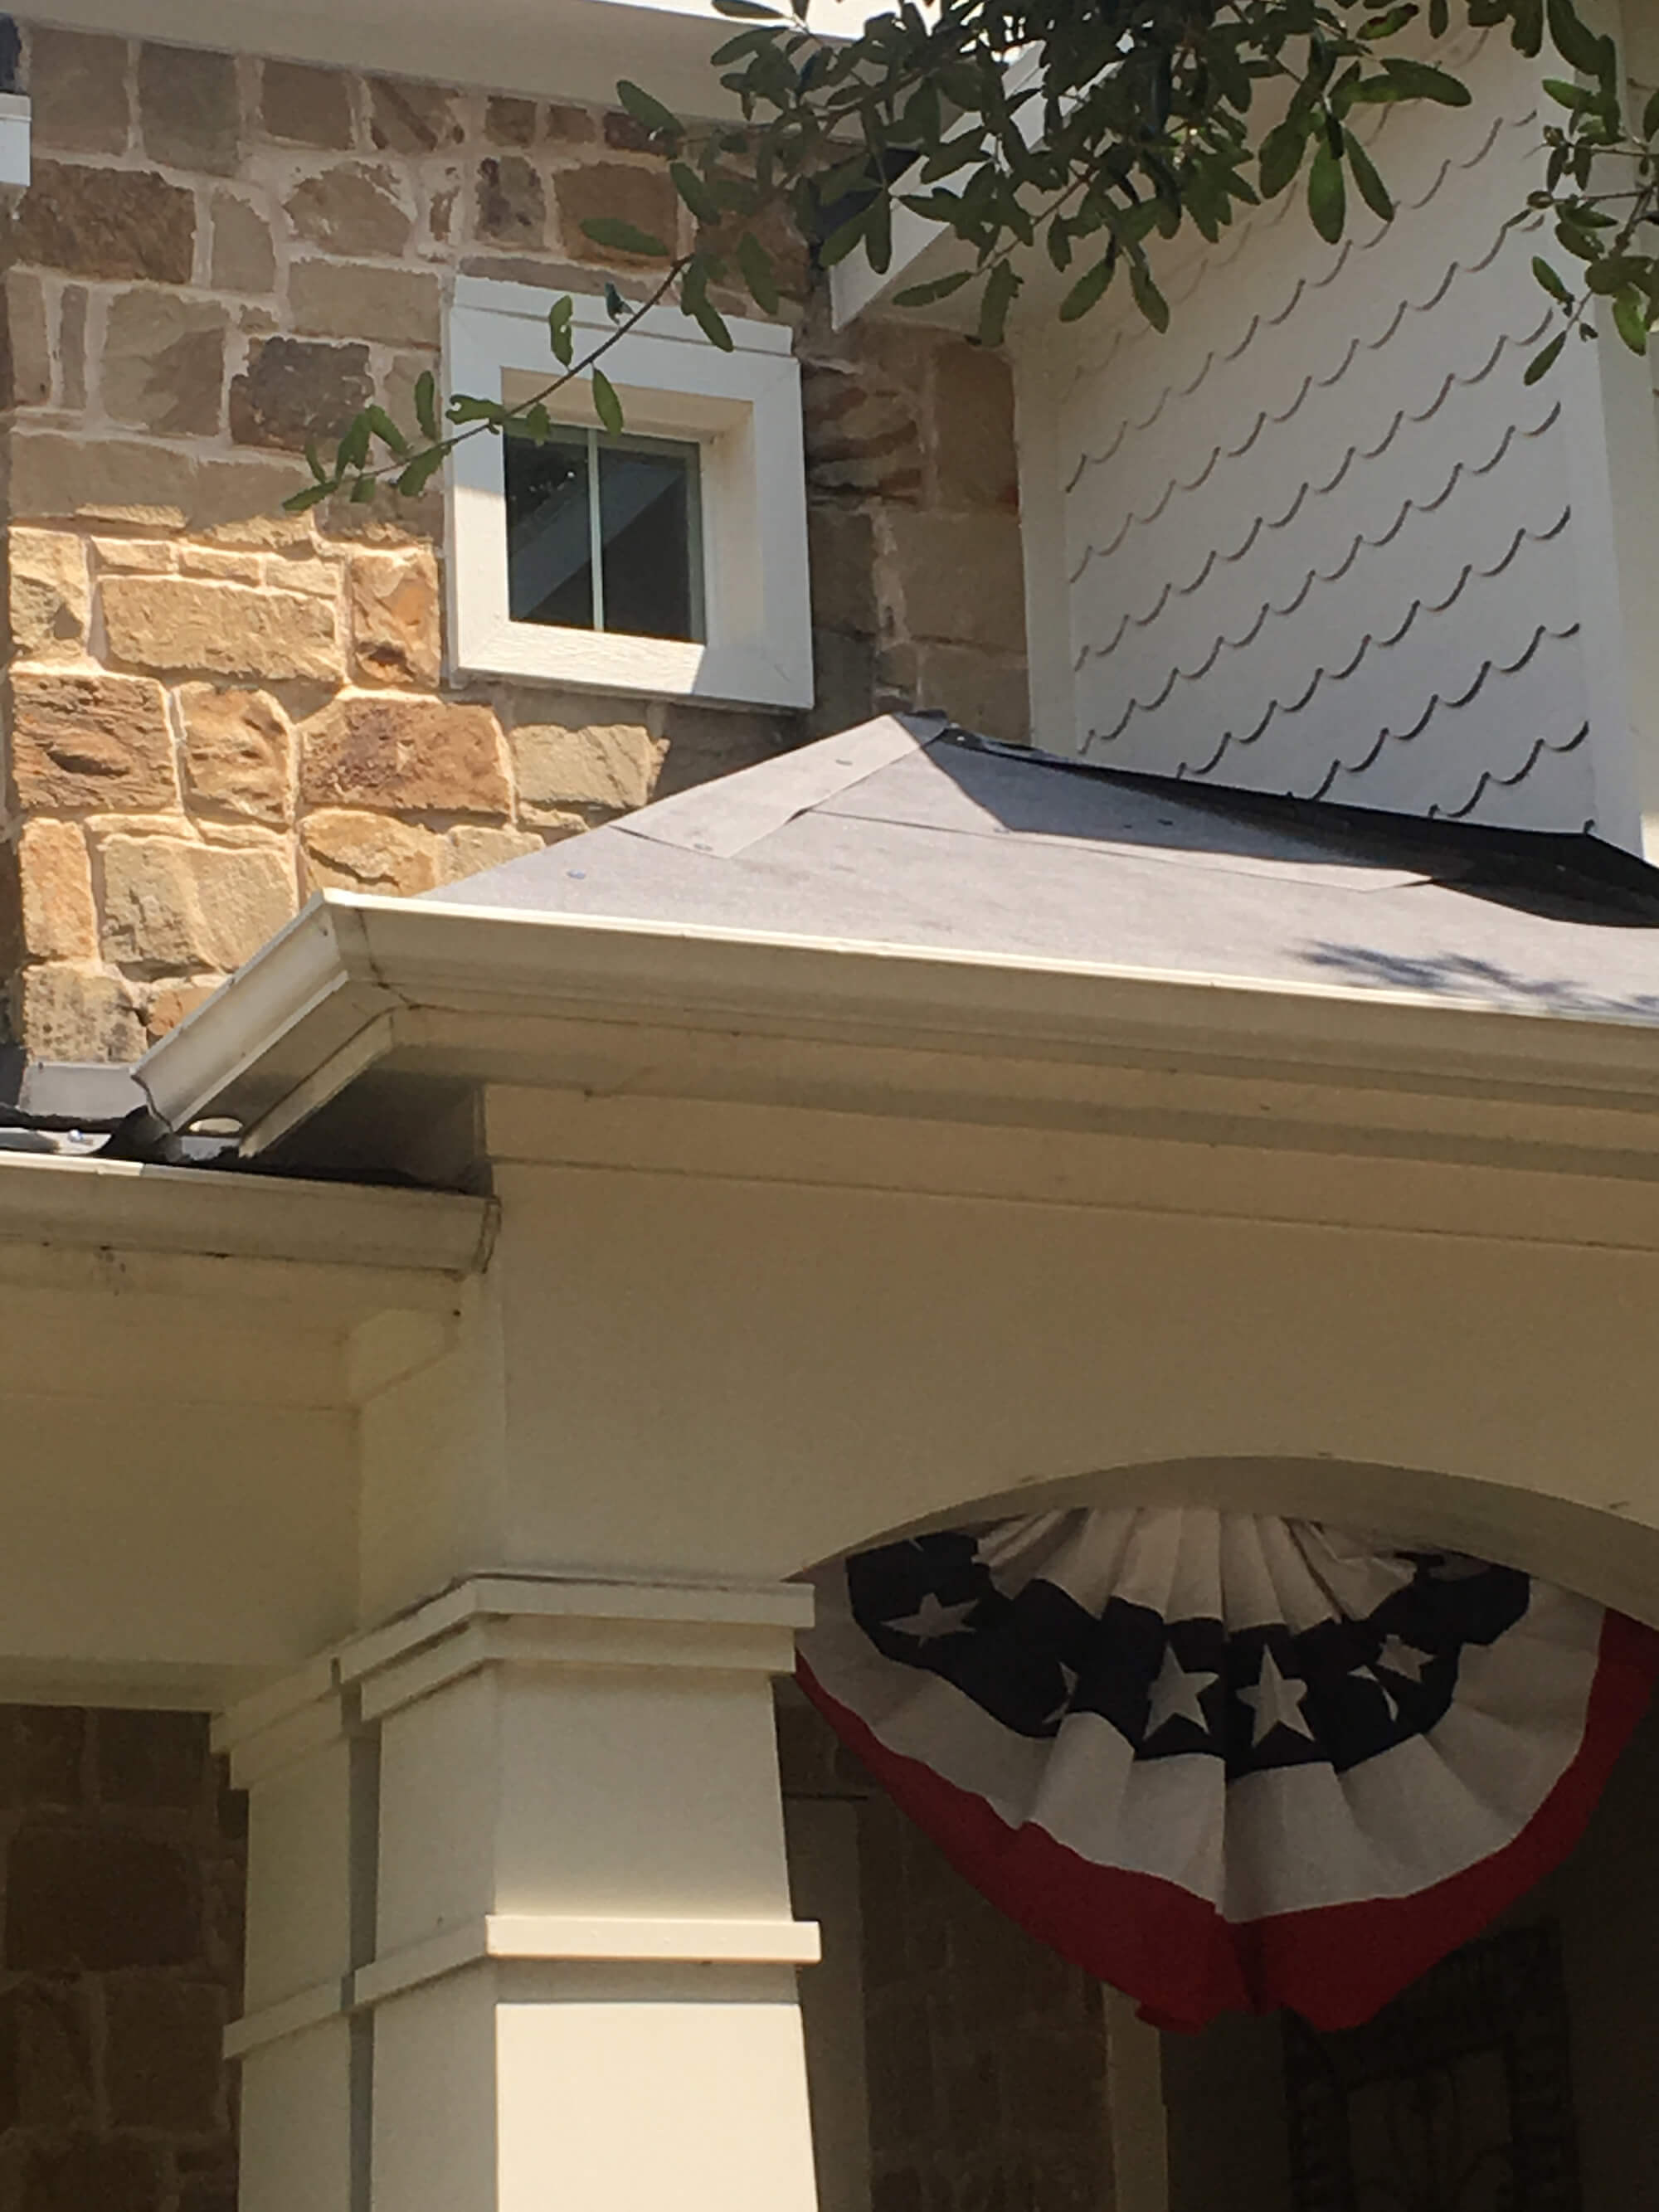 Roofing Contractor Photos Of Completed Homes In Dfw Tx